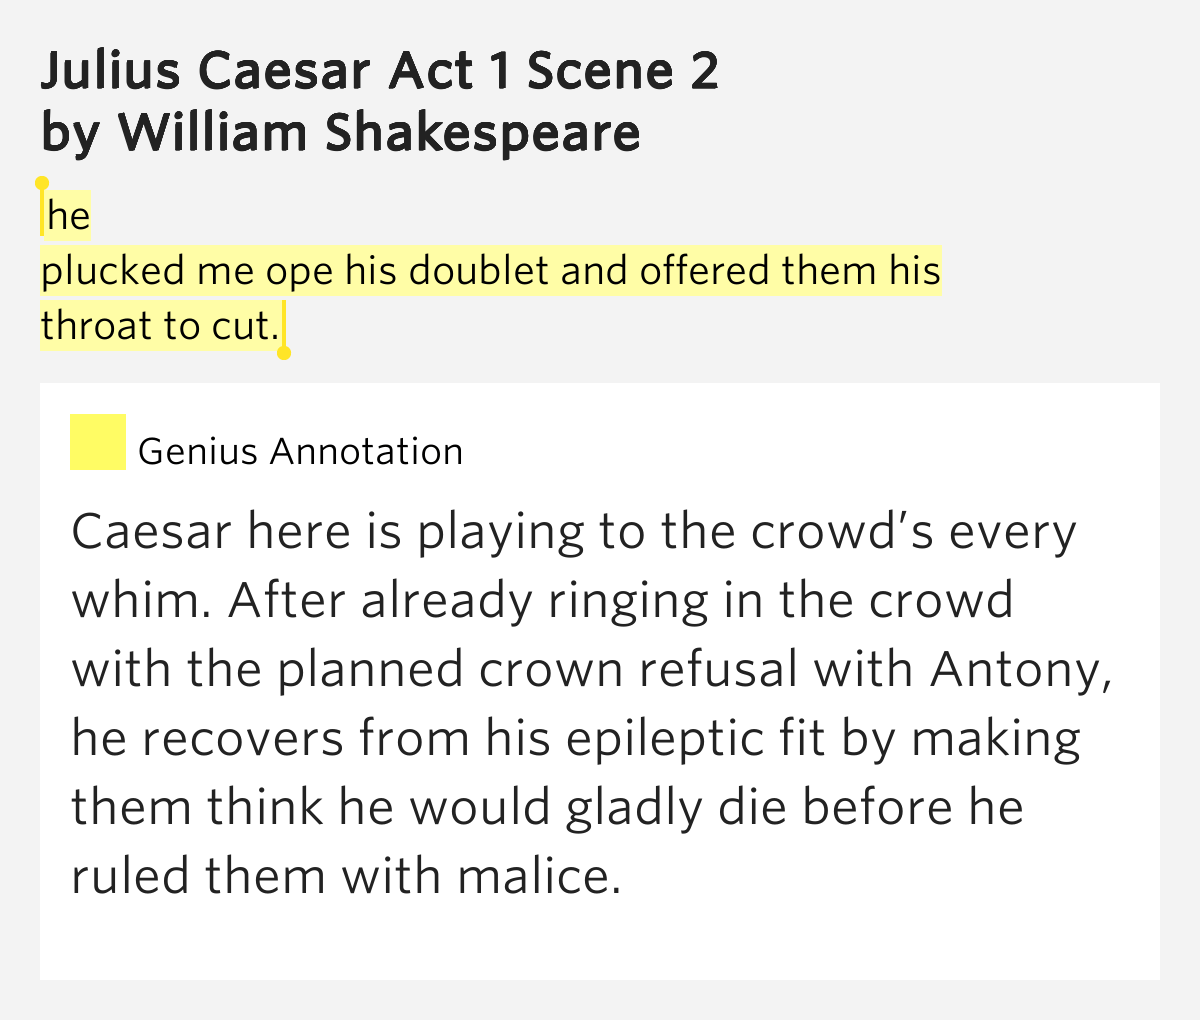 He Plucked Me Ope His Doublet And Offered Them His Throat To Cut Julius Caesar Act 1